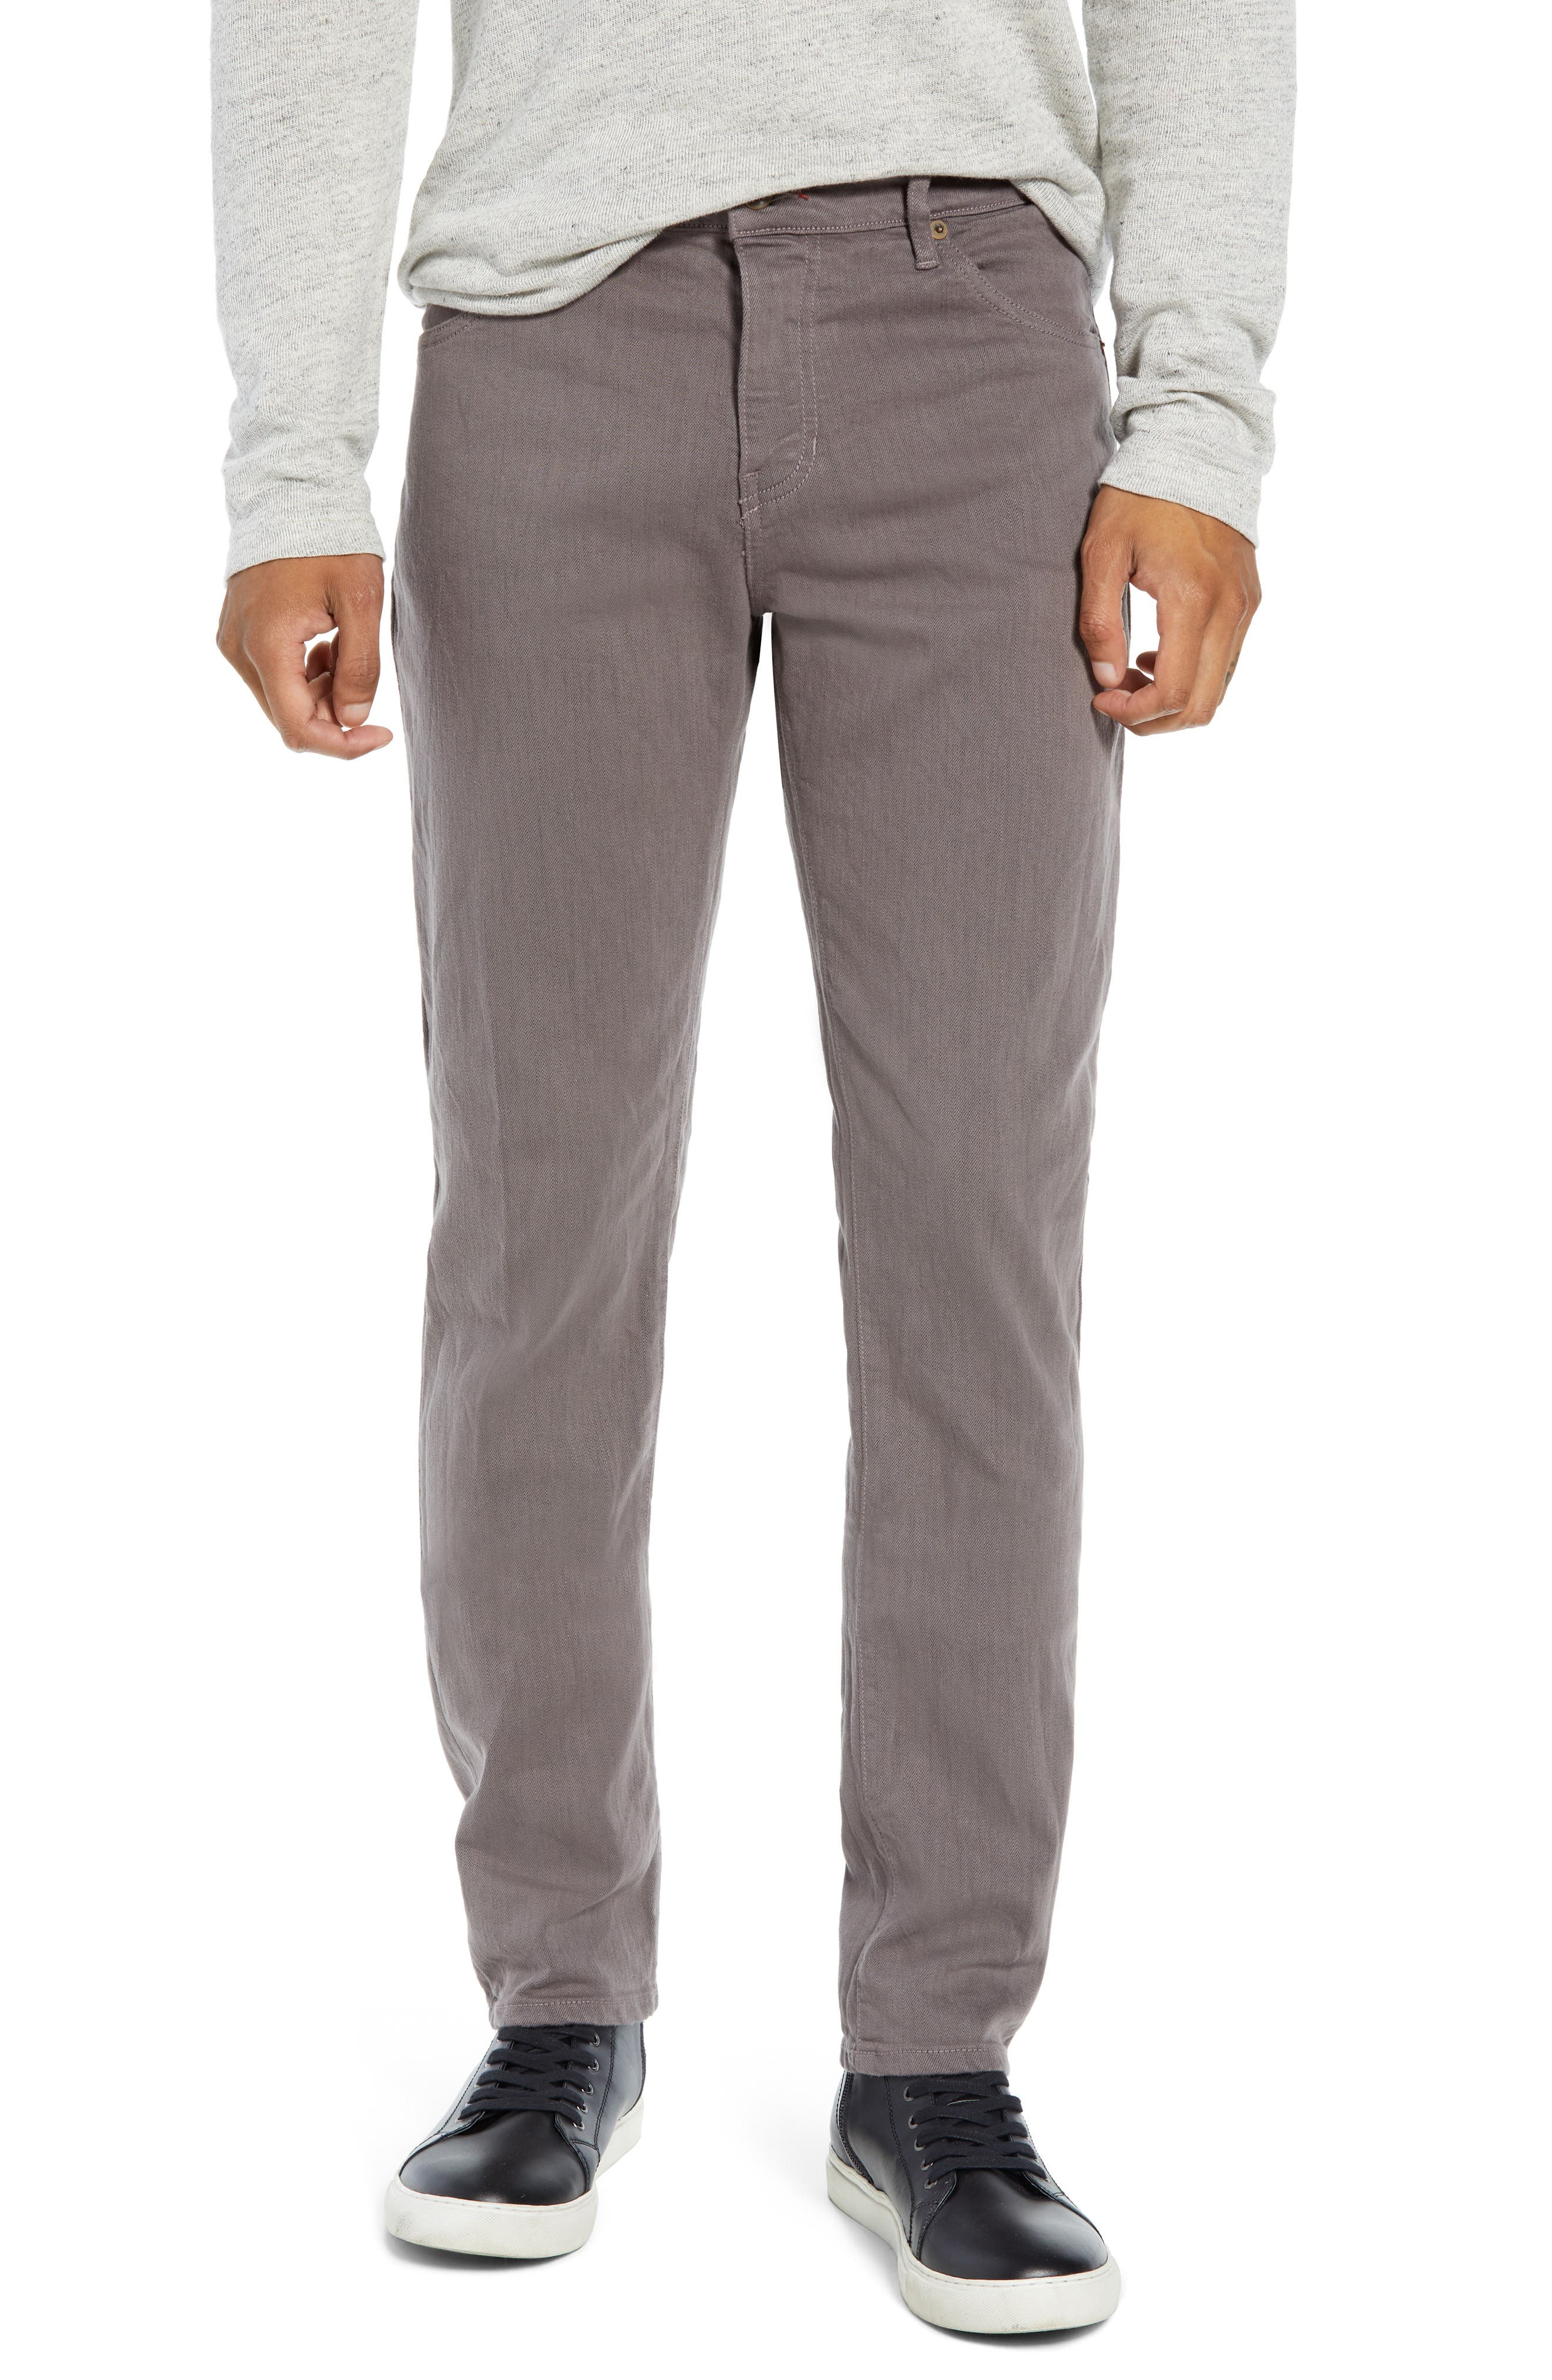 Martin Skinny Fit Jeans,                         Main,                         color, STAINLESS